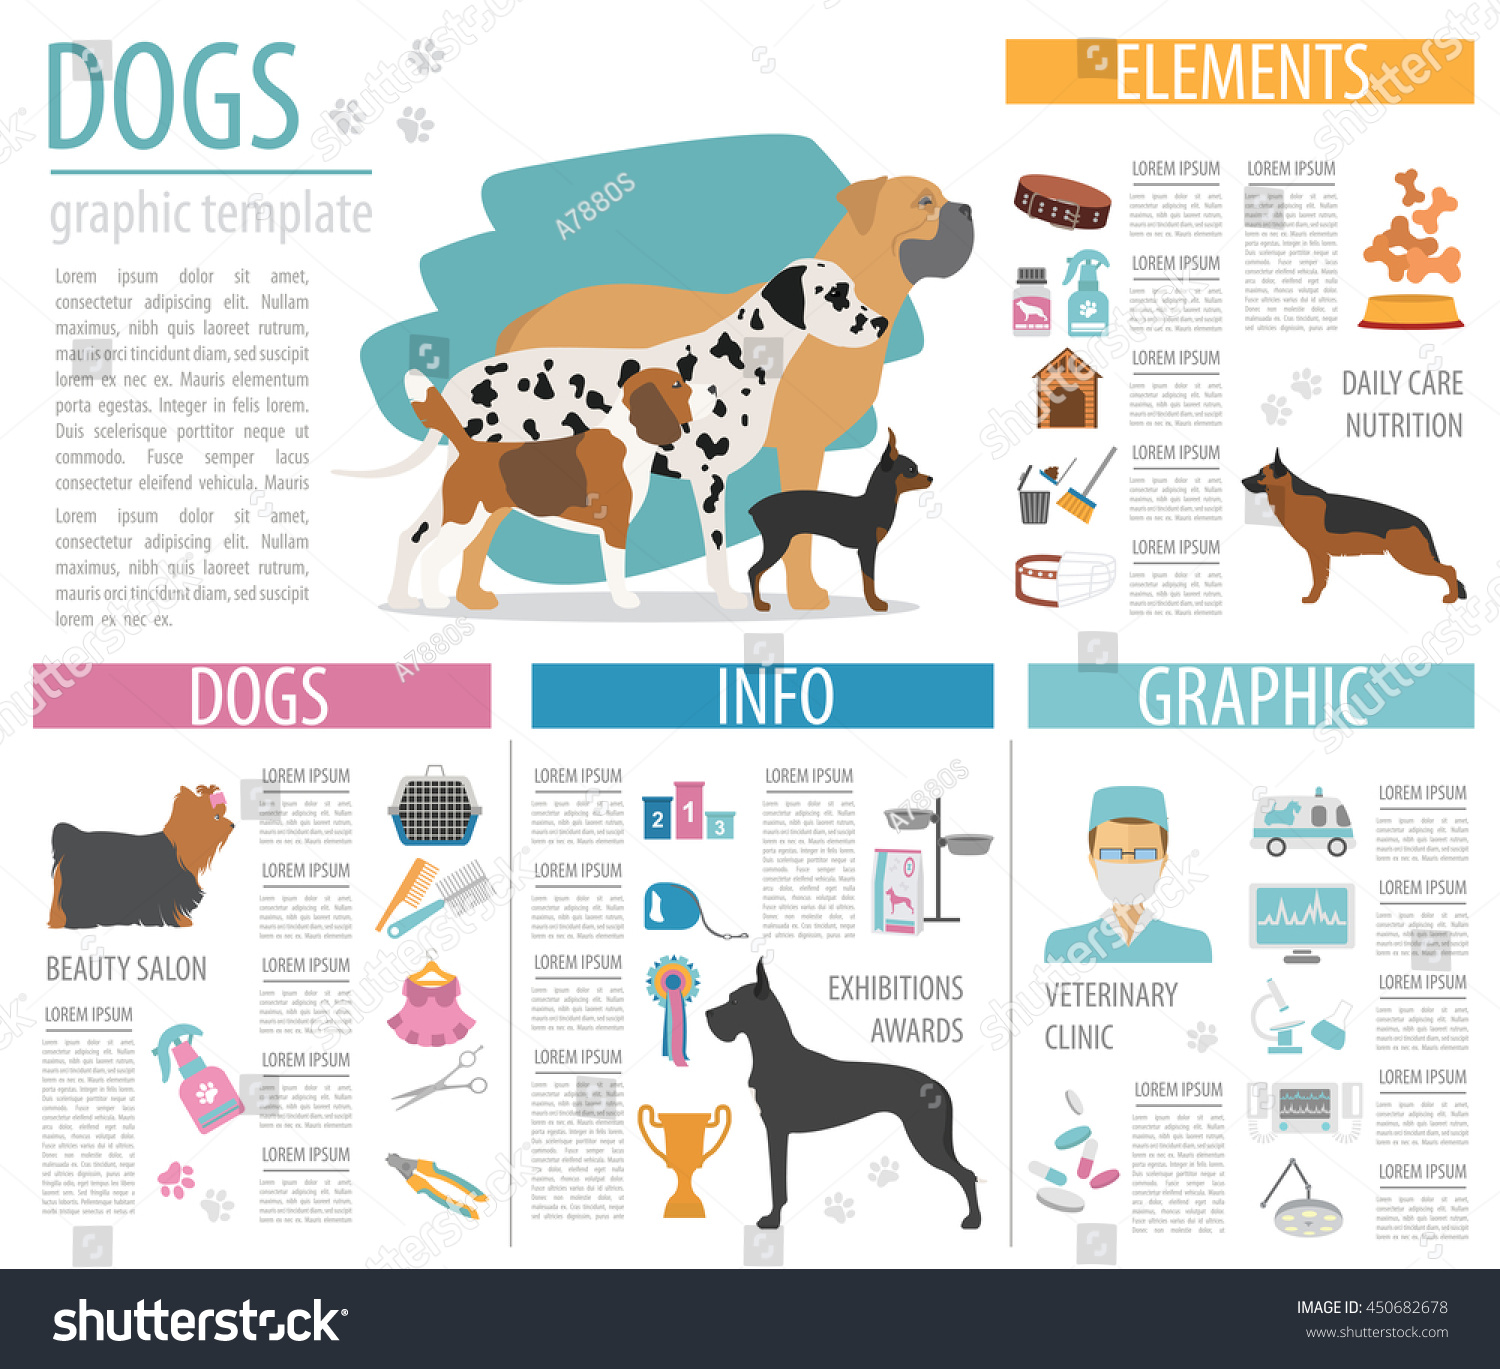 Dog Info Graphic Template Heatlh Care Stock Vector Royalty Free